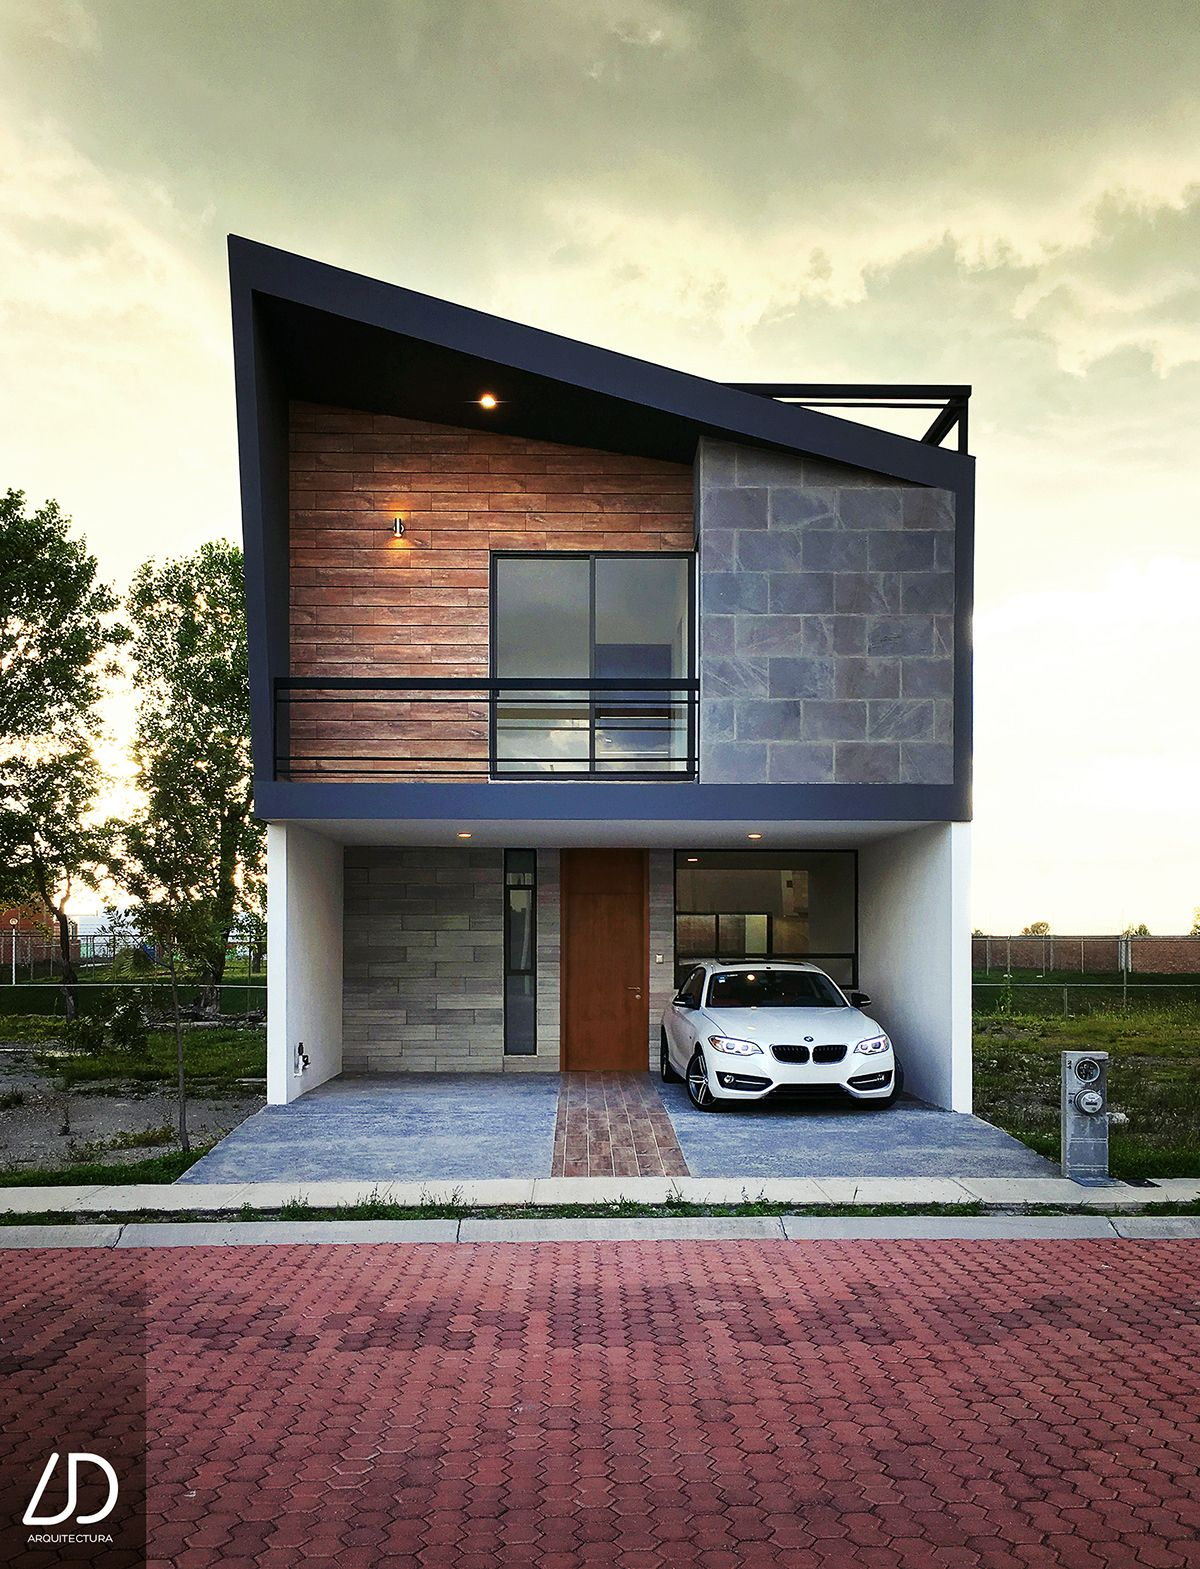 Modern Home Located In Montonate Italy: 3 Floor House Located In Puebla Mexico With A Contemporary